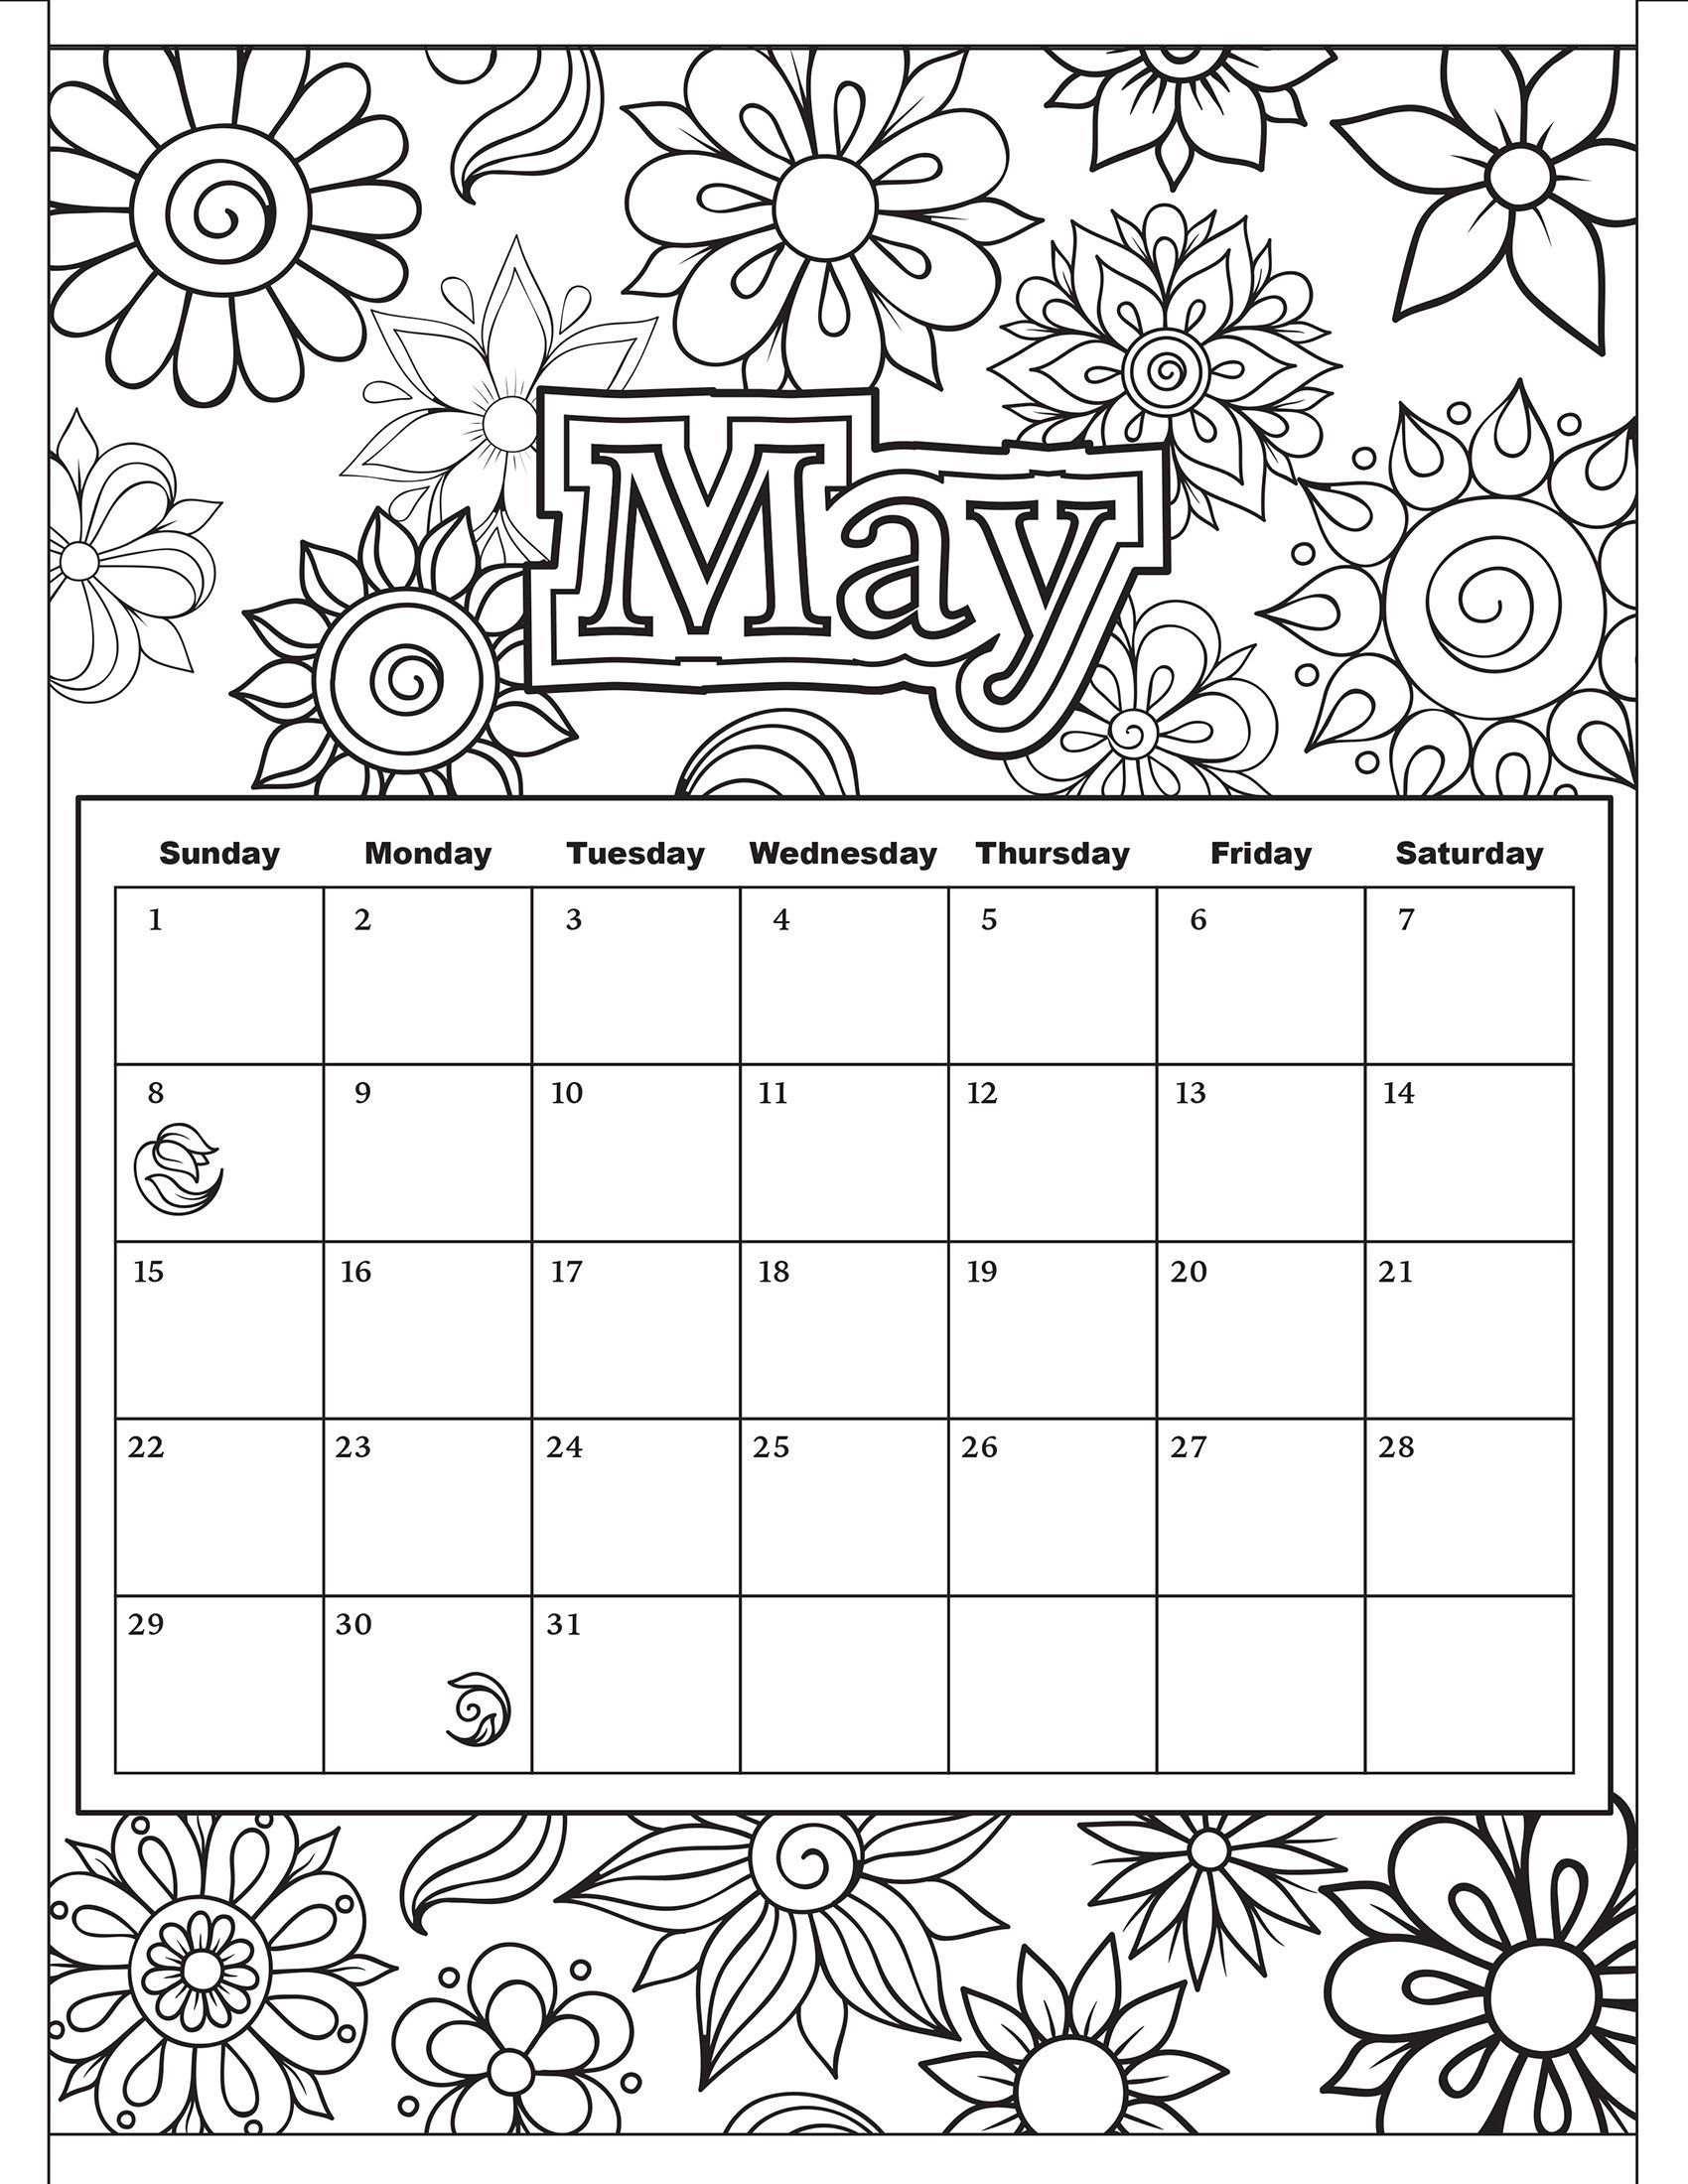 Fr free coloring pages for june - Free Download Coloring Pages From Popular Adult Coloring Books